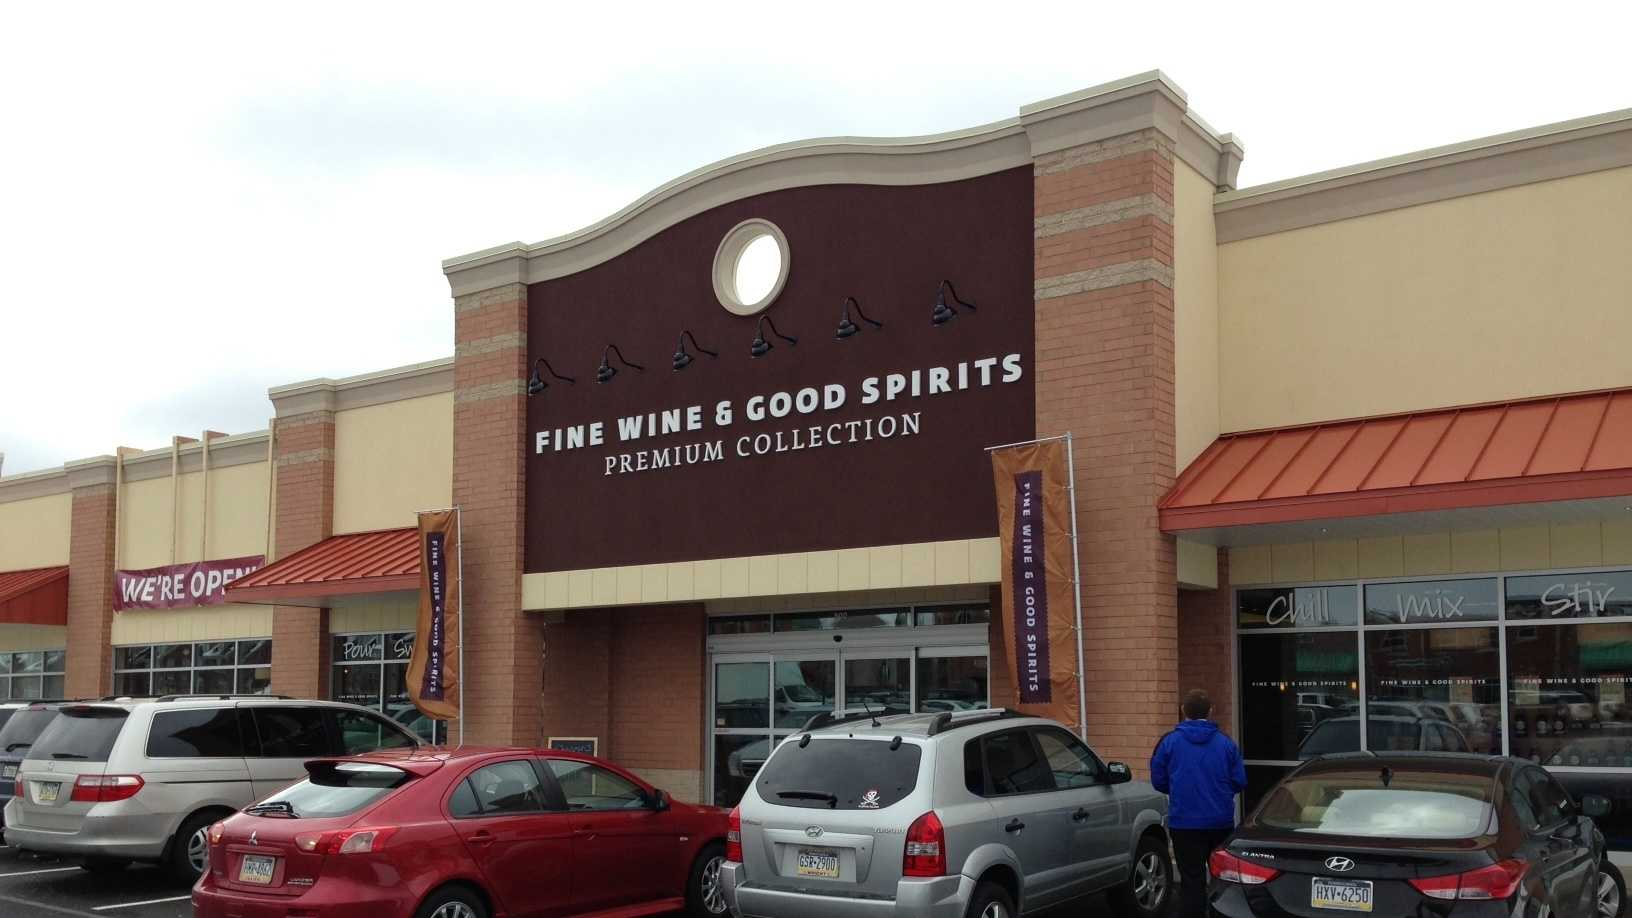 The Fine Wine & Good Spirits store in the Village at Pine shopping center offered free tastings at its grand opening Tuesday morning.